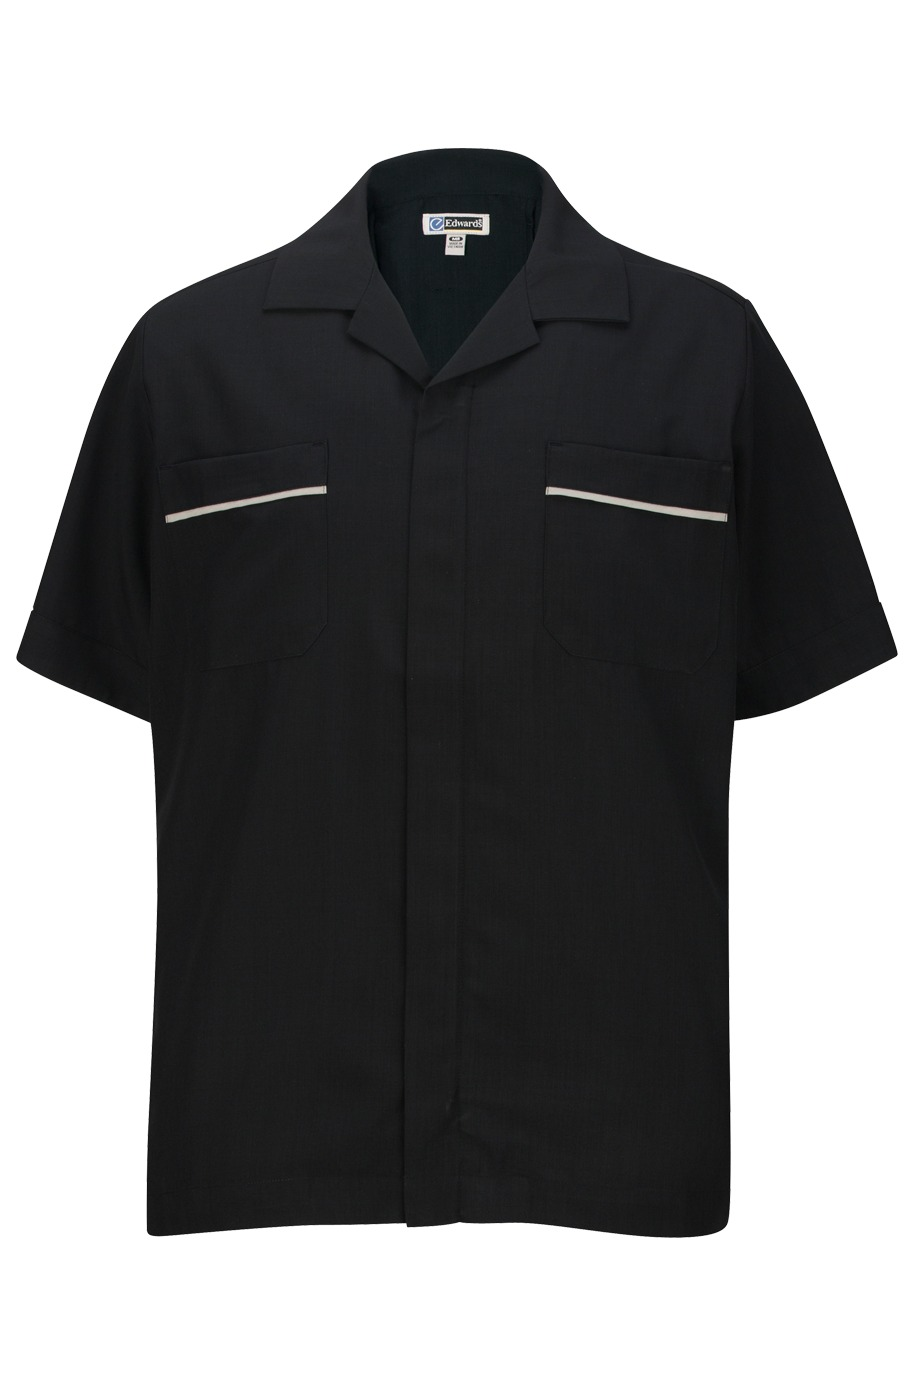 Edwards Garment 4280 - Pinnacle Service Shirt